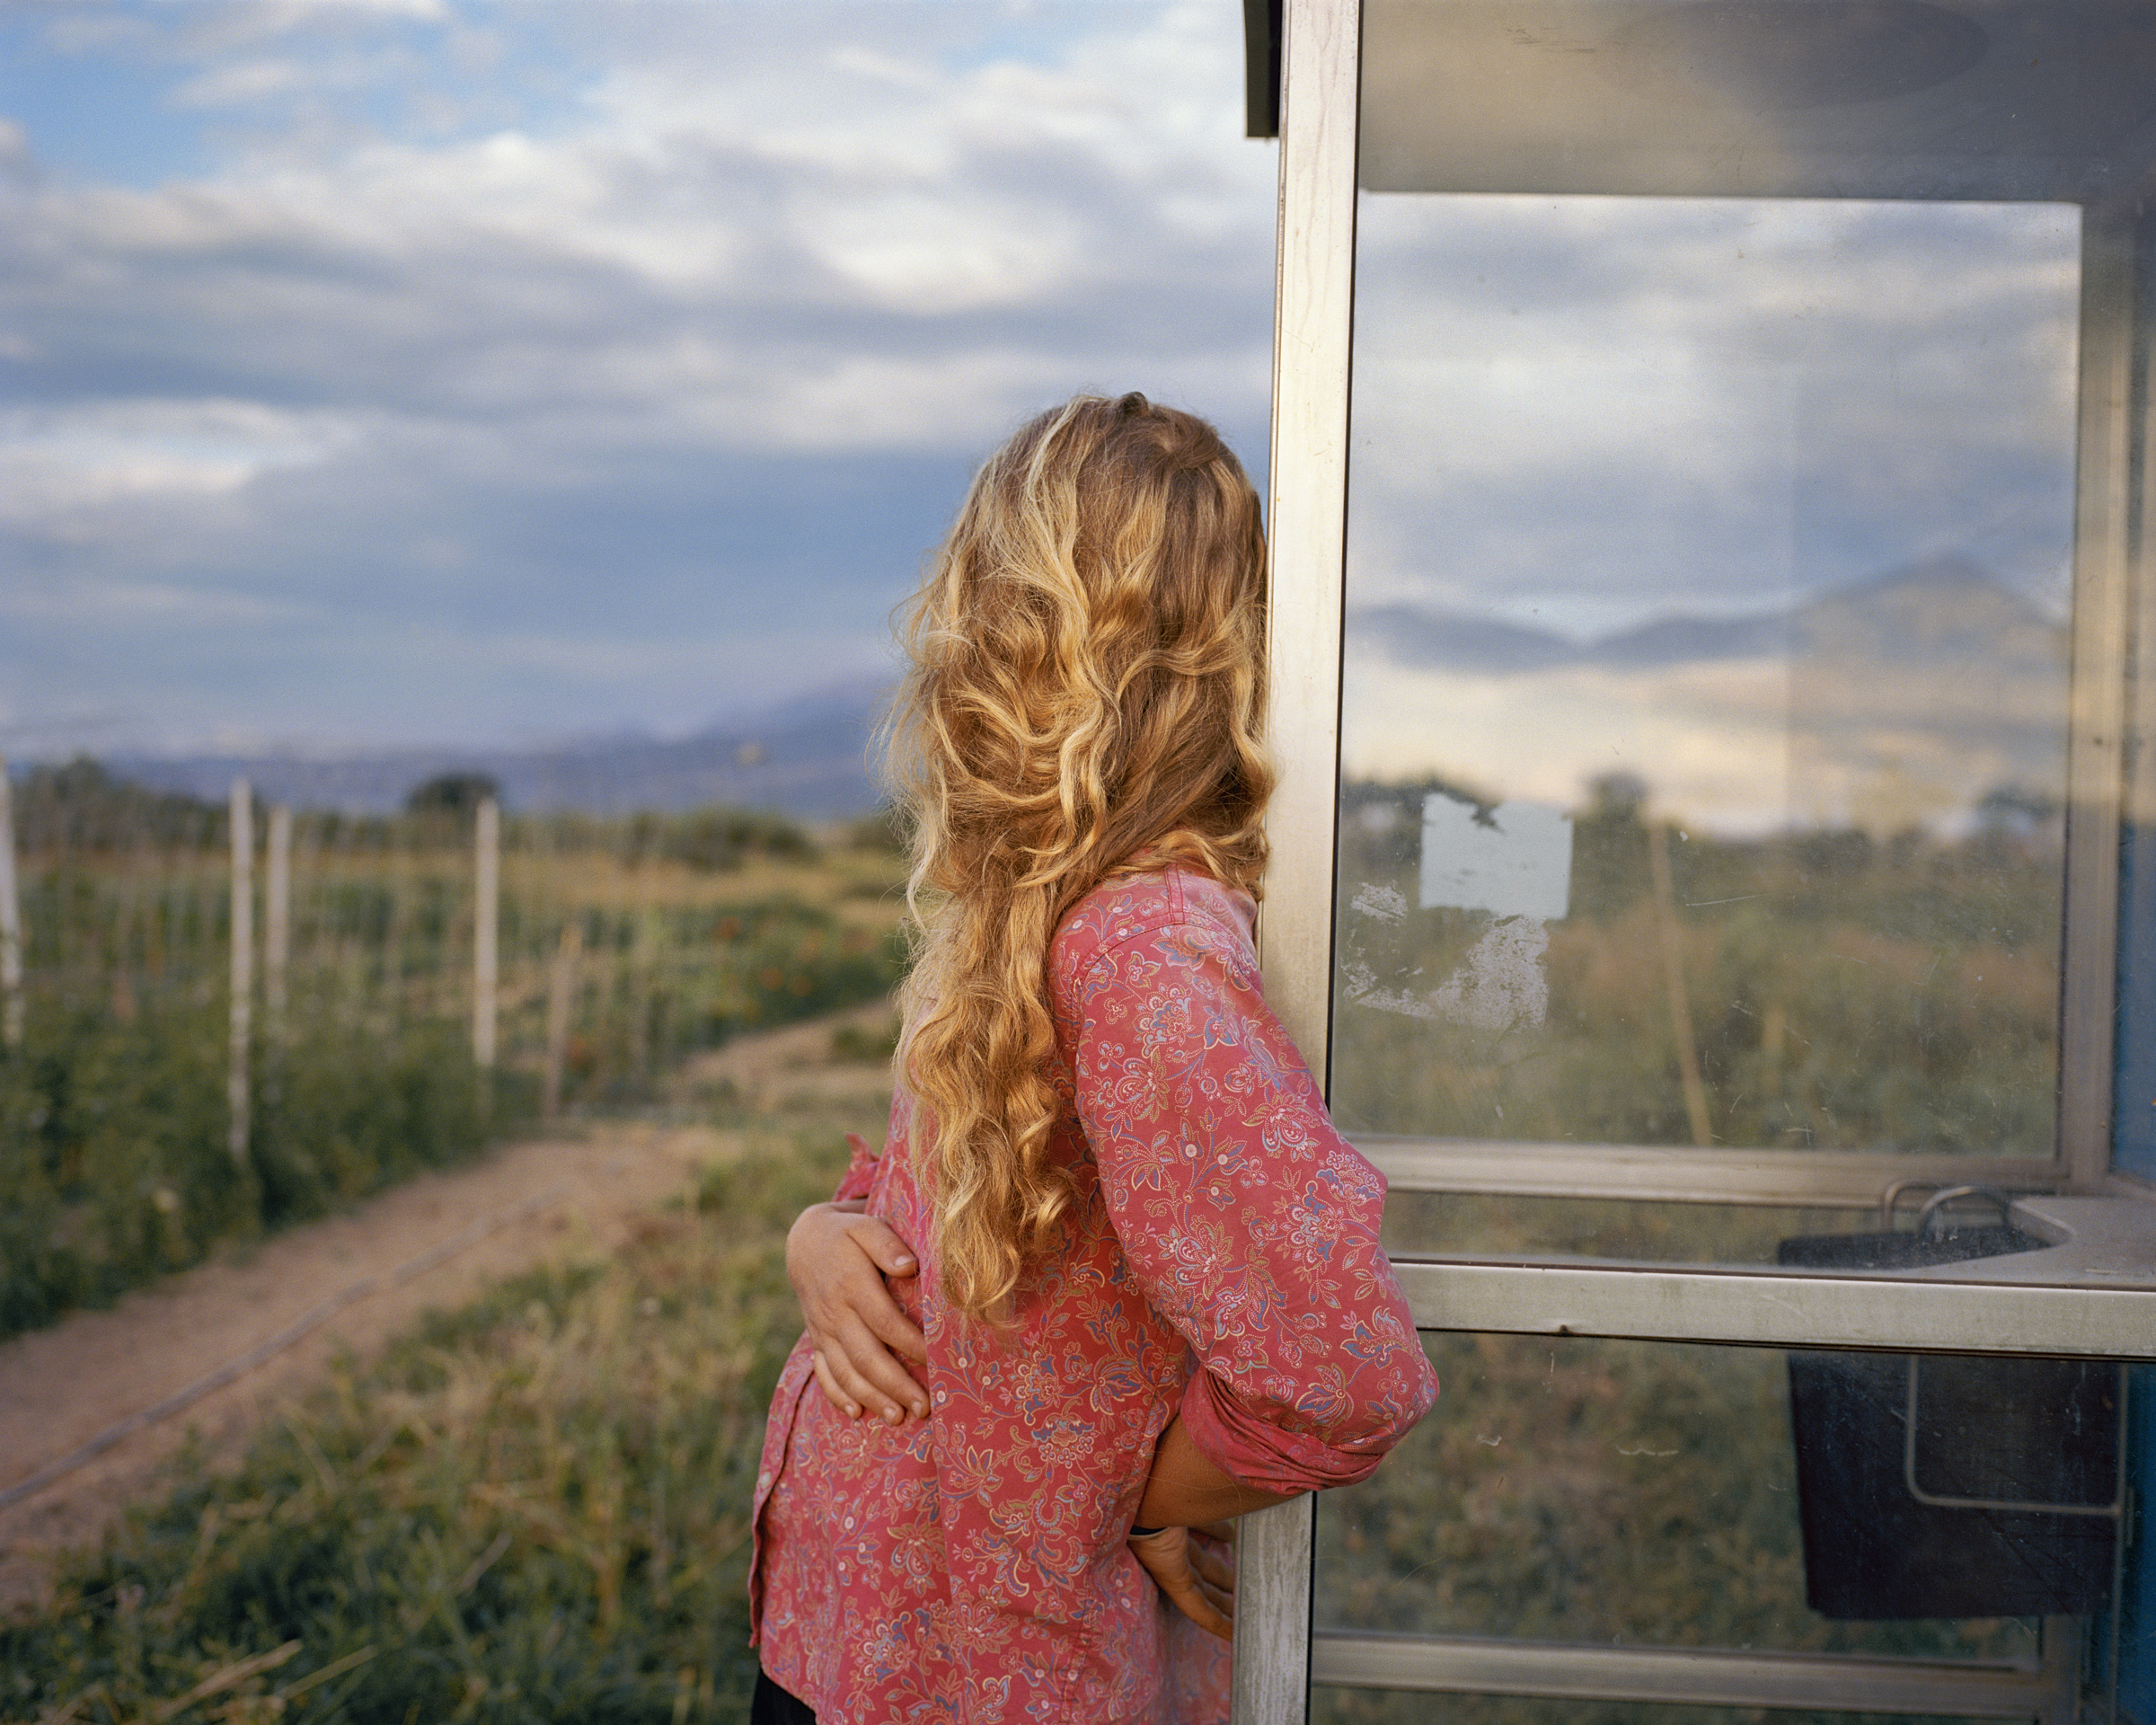 Davis Bailey_Karen, Hotchkiss, Colorado, 2014.jpg